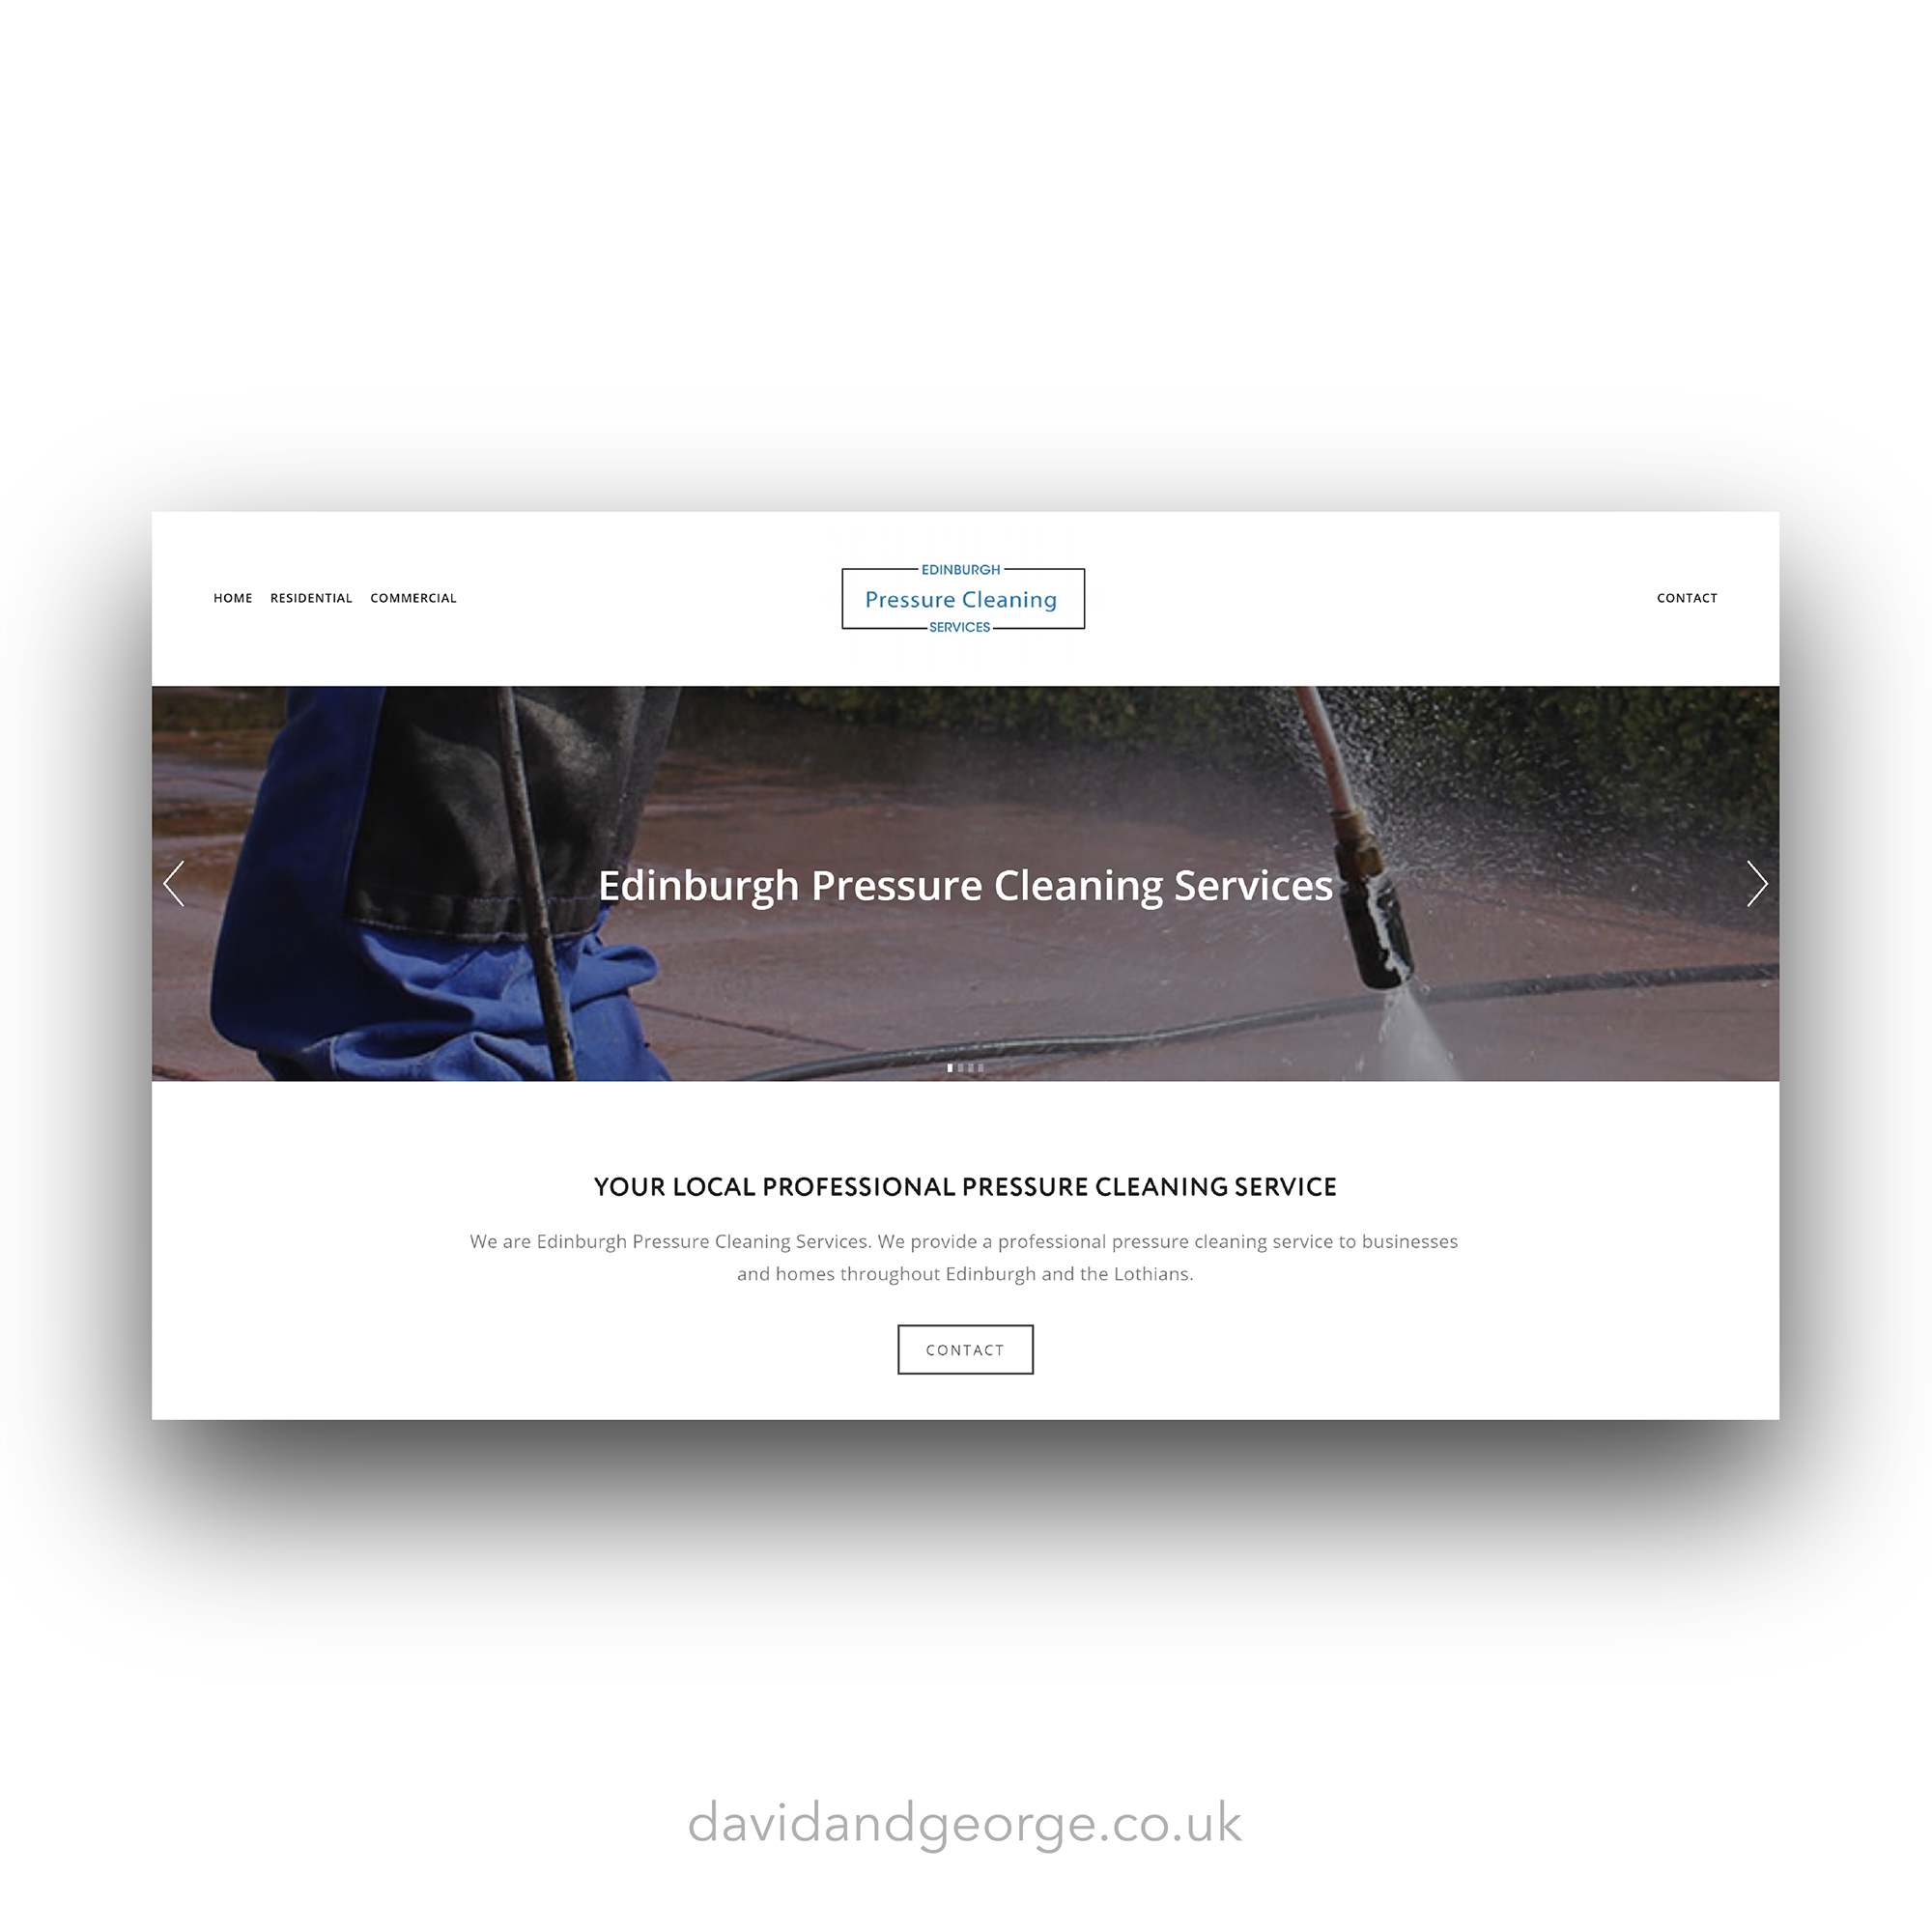 edinburgh-pressure-cleaning-services-trades-building-cleaning-construction-website-examples-squarespace-designer-uk-05.jpg